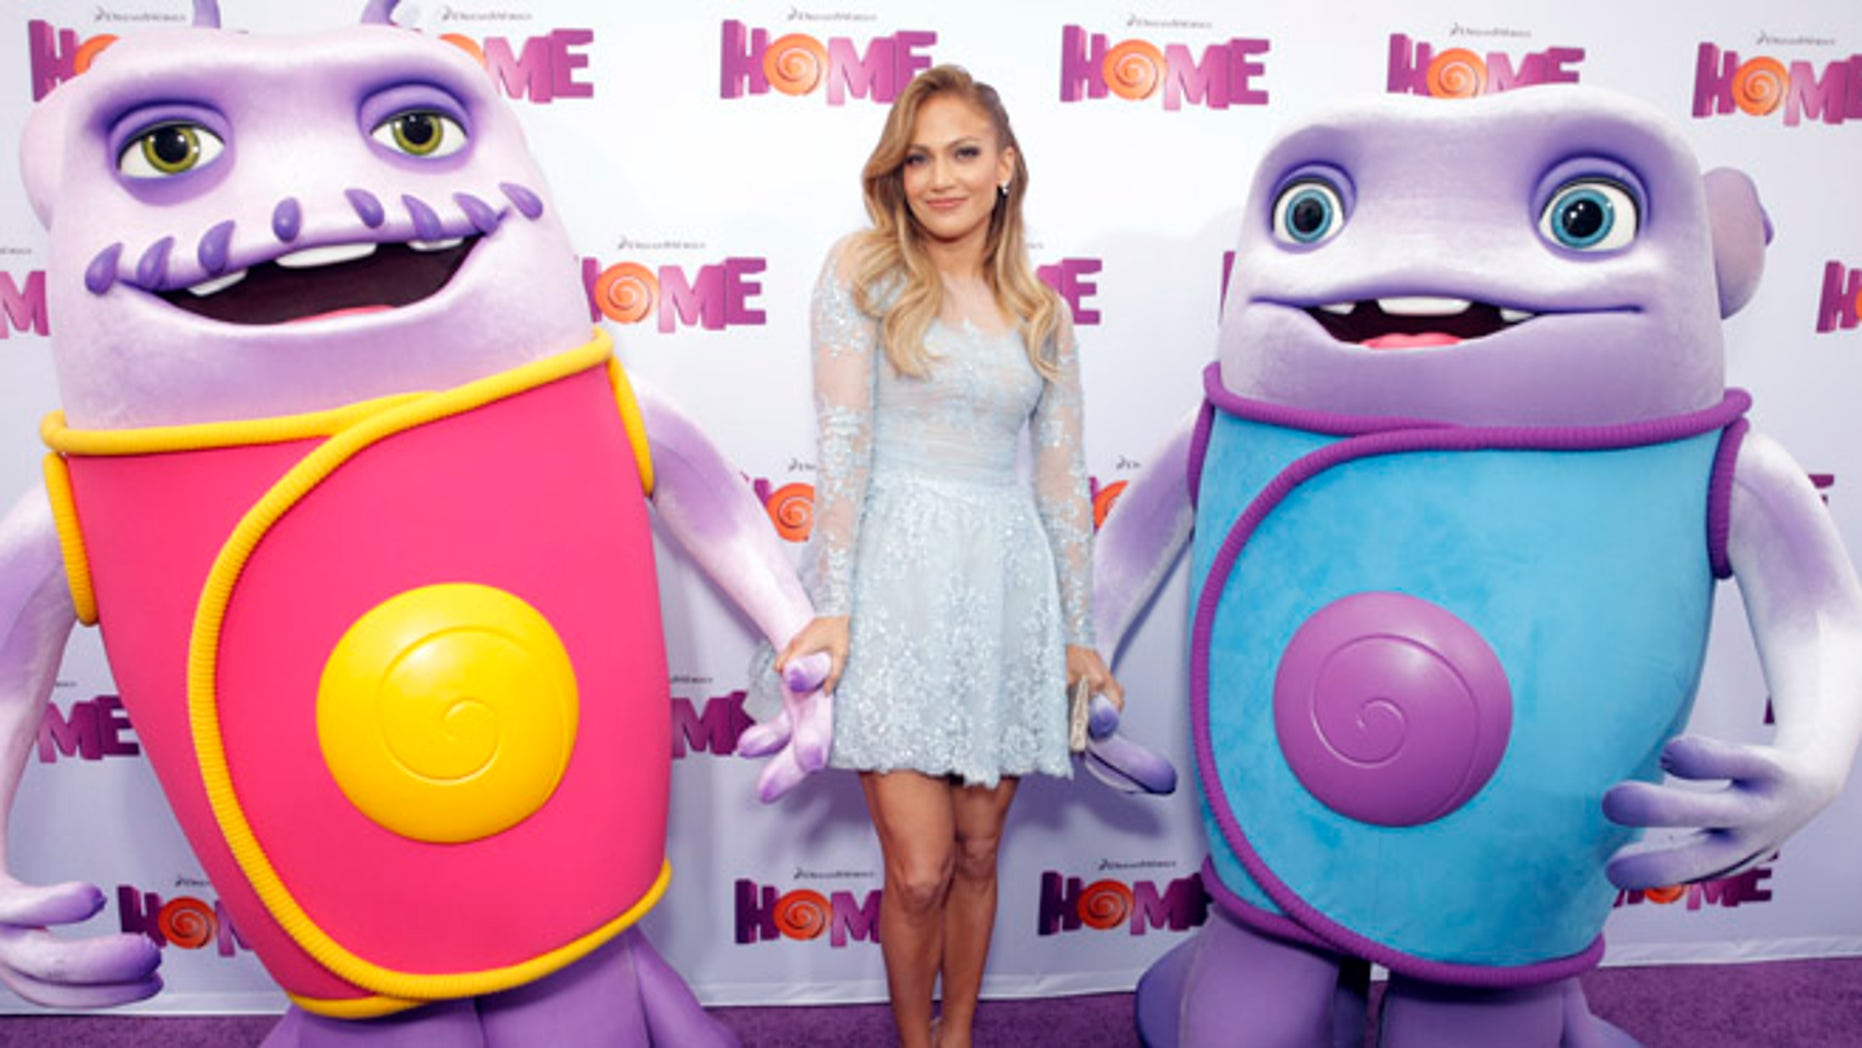 """Jennifer Lopez attends the Los Angeles Premiere of """"Home"""" at the Regency Village Theatre on Sunday, March 22, 2015, in Westwood, Calif. (Photo by Todd Williamson/Invision/AP)"""